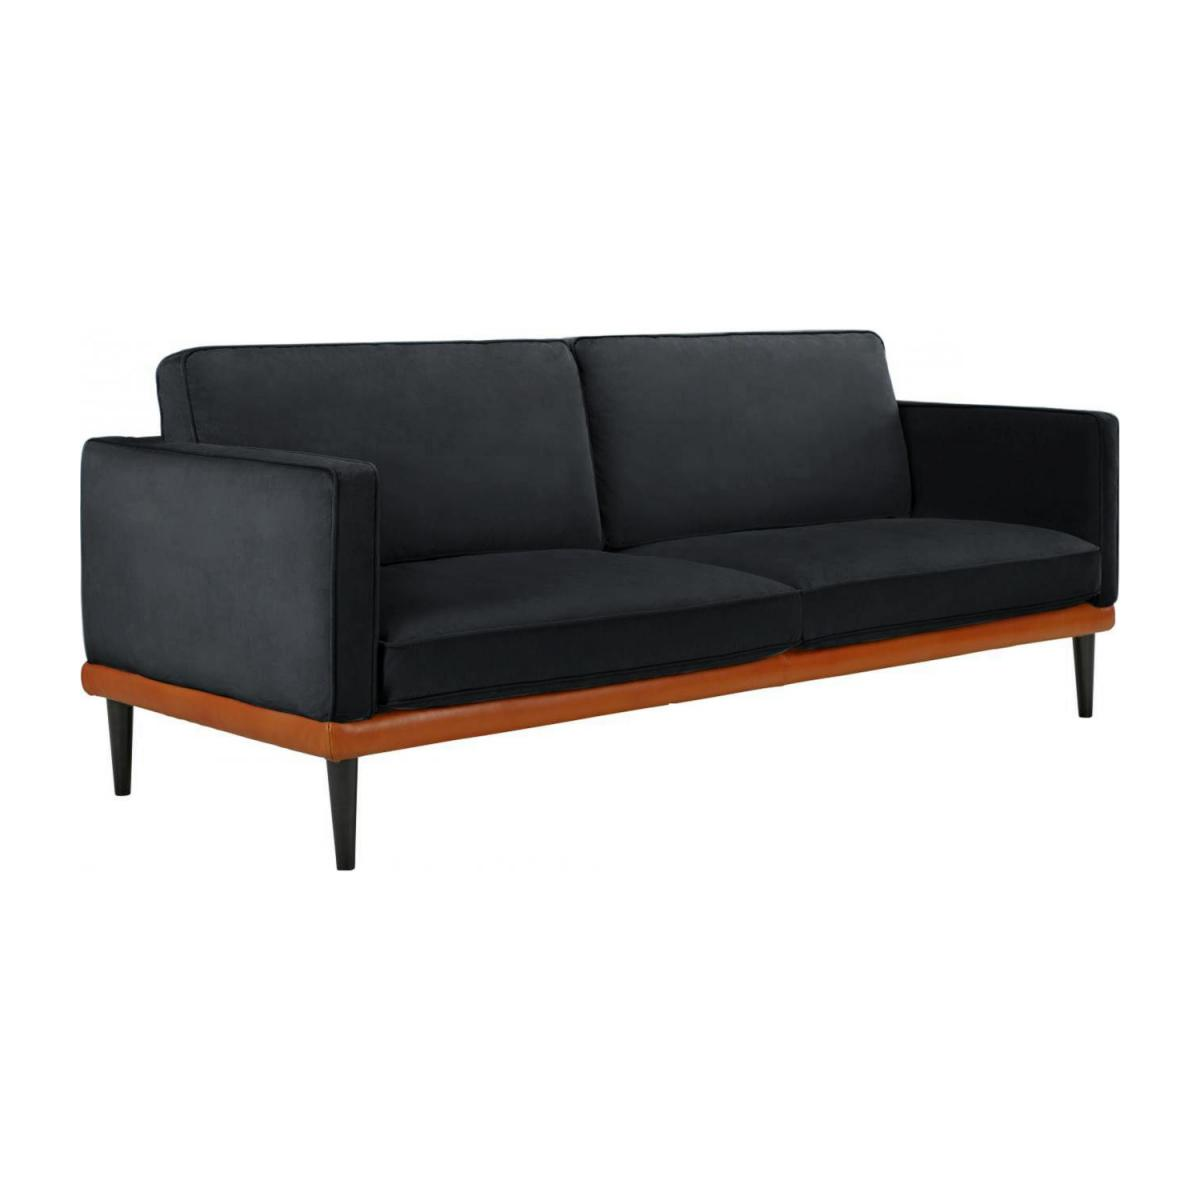 giorgio 3 sitzer sofa aus samt grau und basis aus. Black Bedroom Furniture Sets. Home Design Ideas